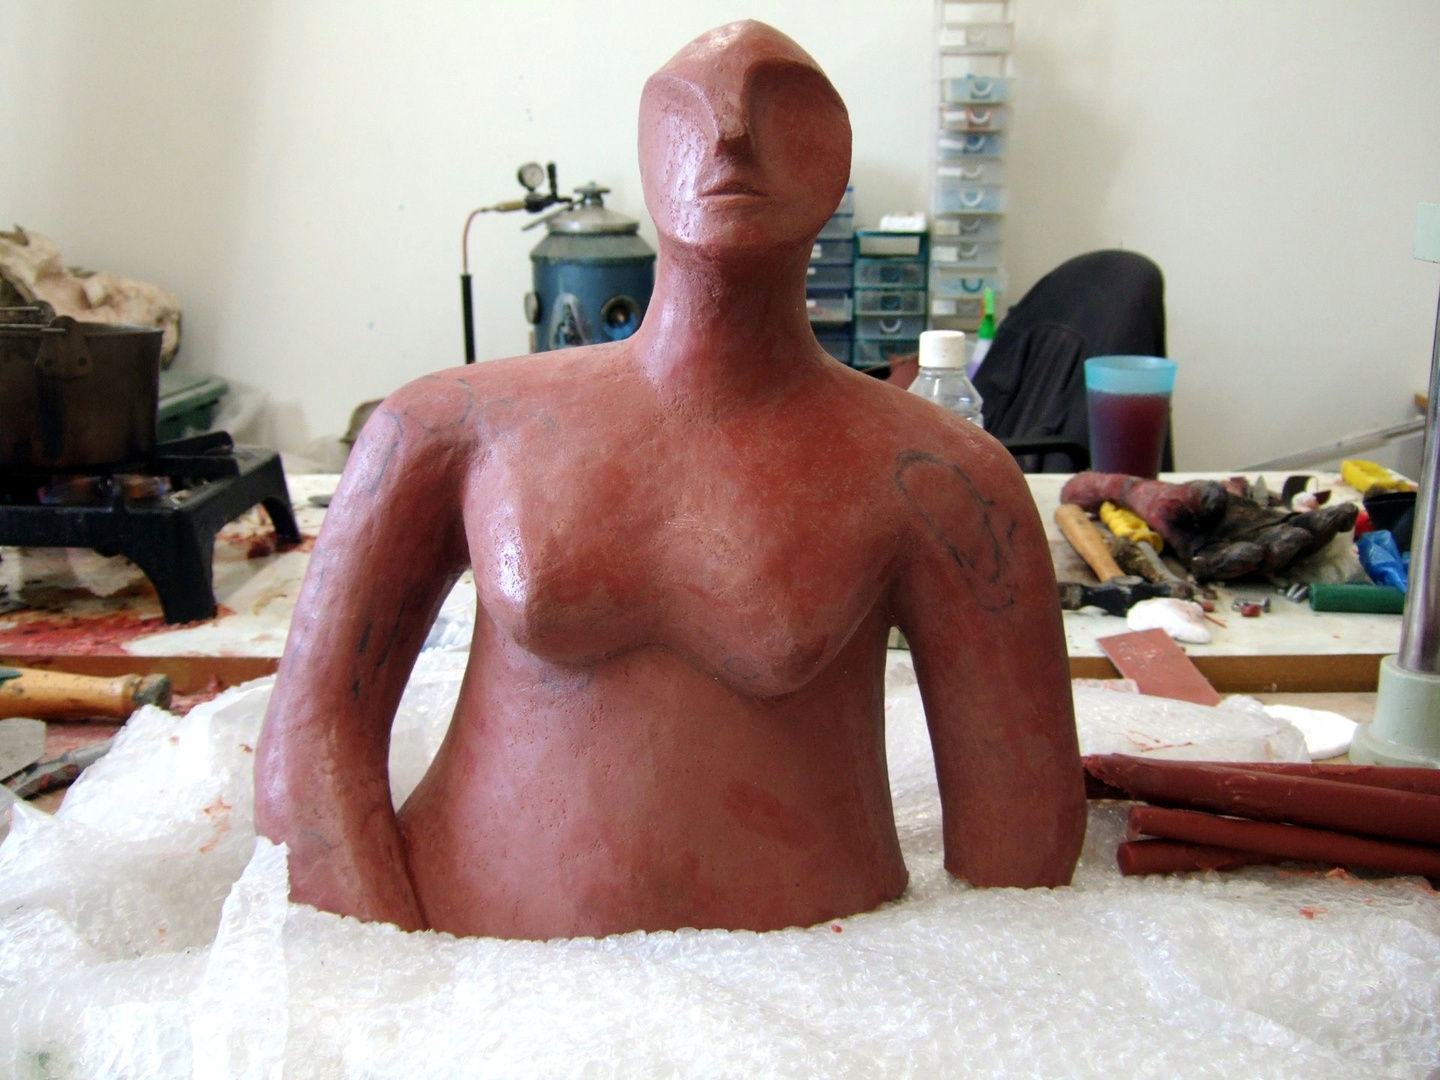 the wax sculpture is cut into several smaller piec